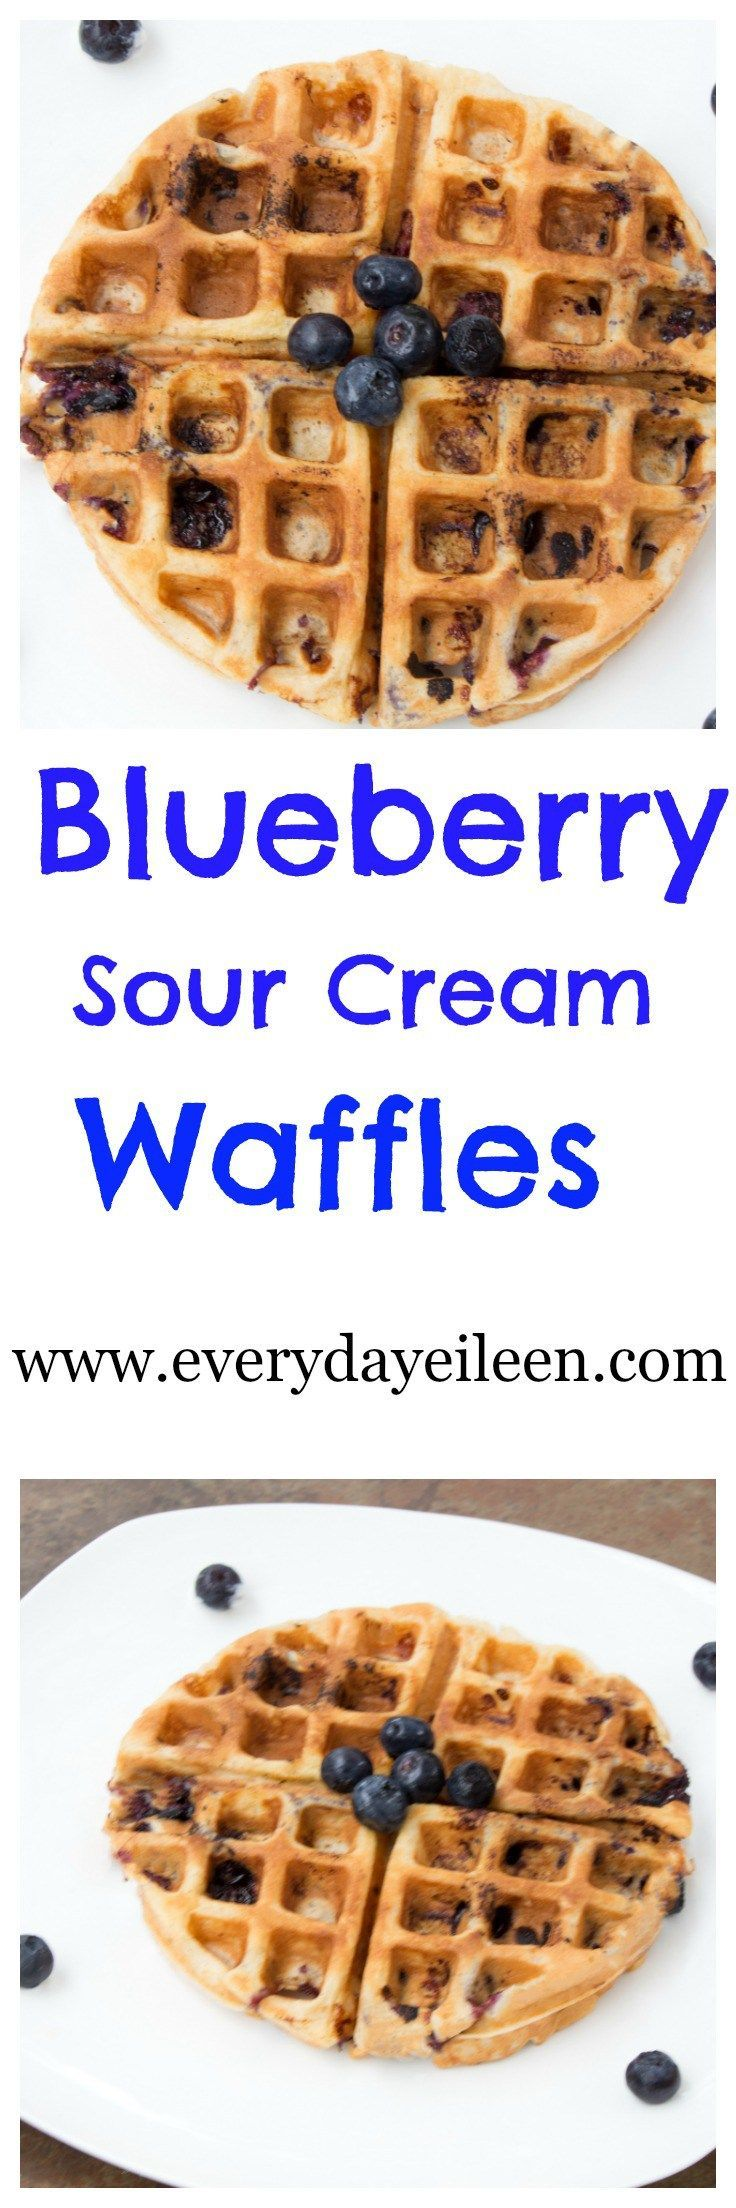 sour cream waffle | Best of Pinterest | Pinterest | Sour Cream ...